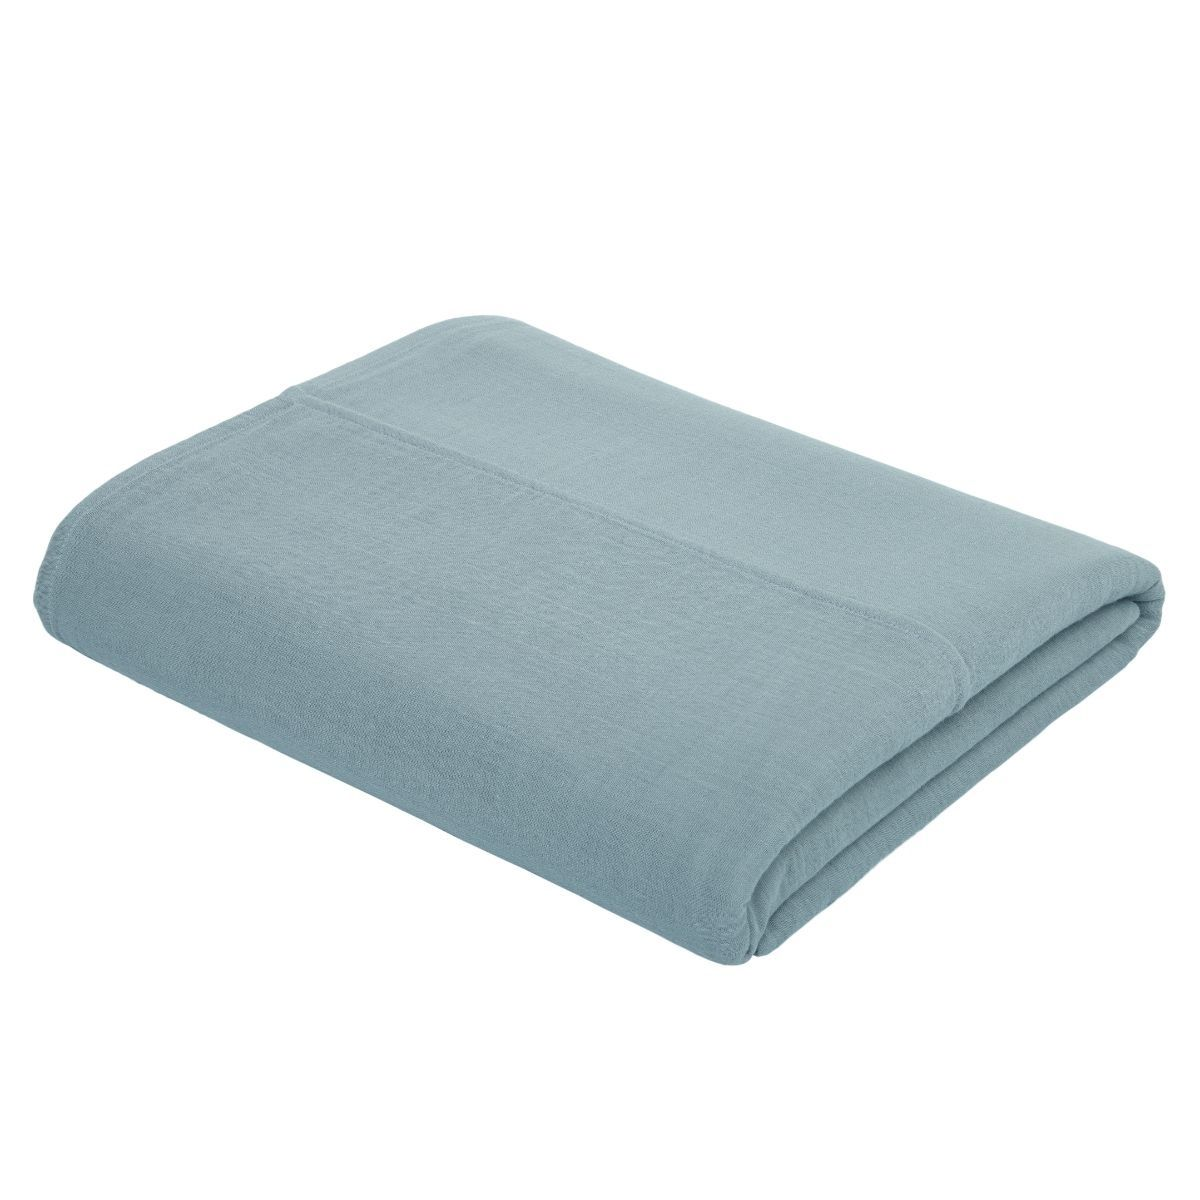 Numero 74 Top Flat Sheet Plain sweet blue